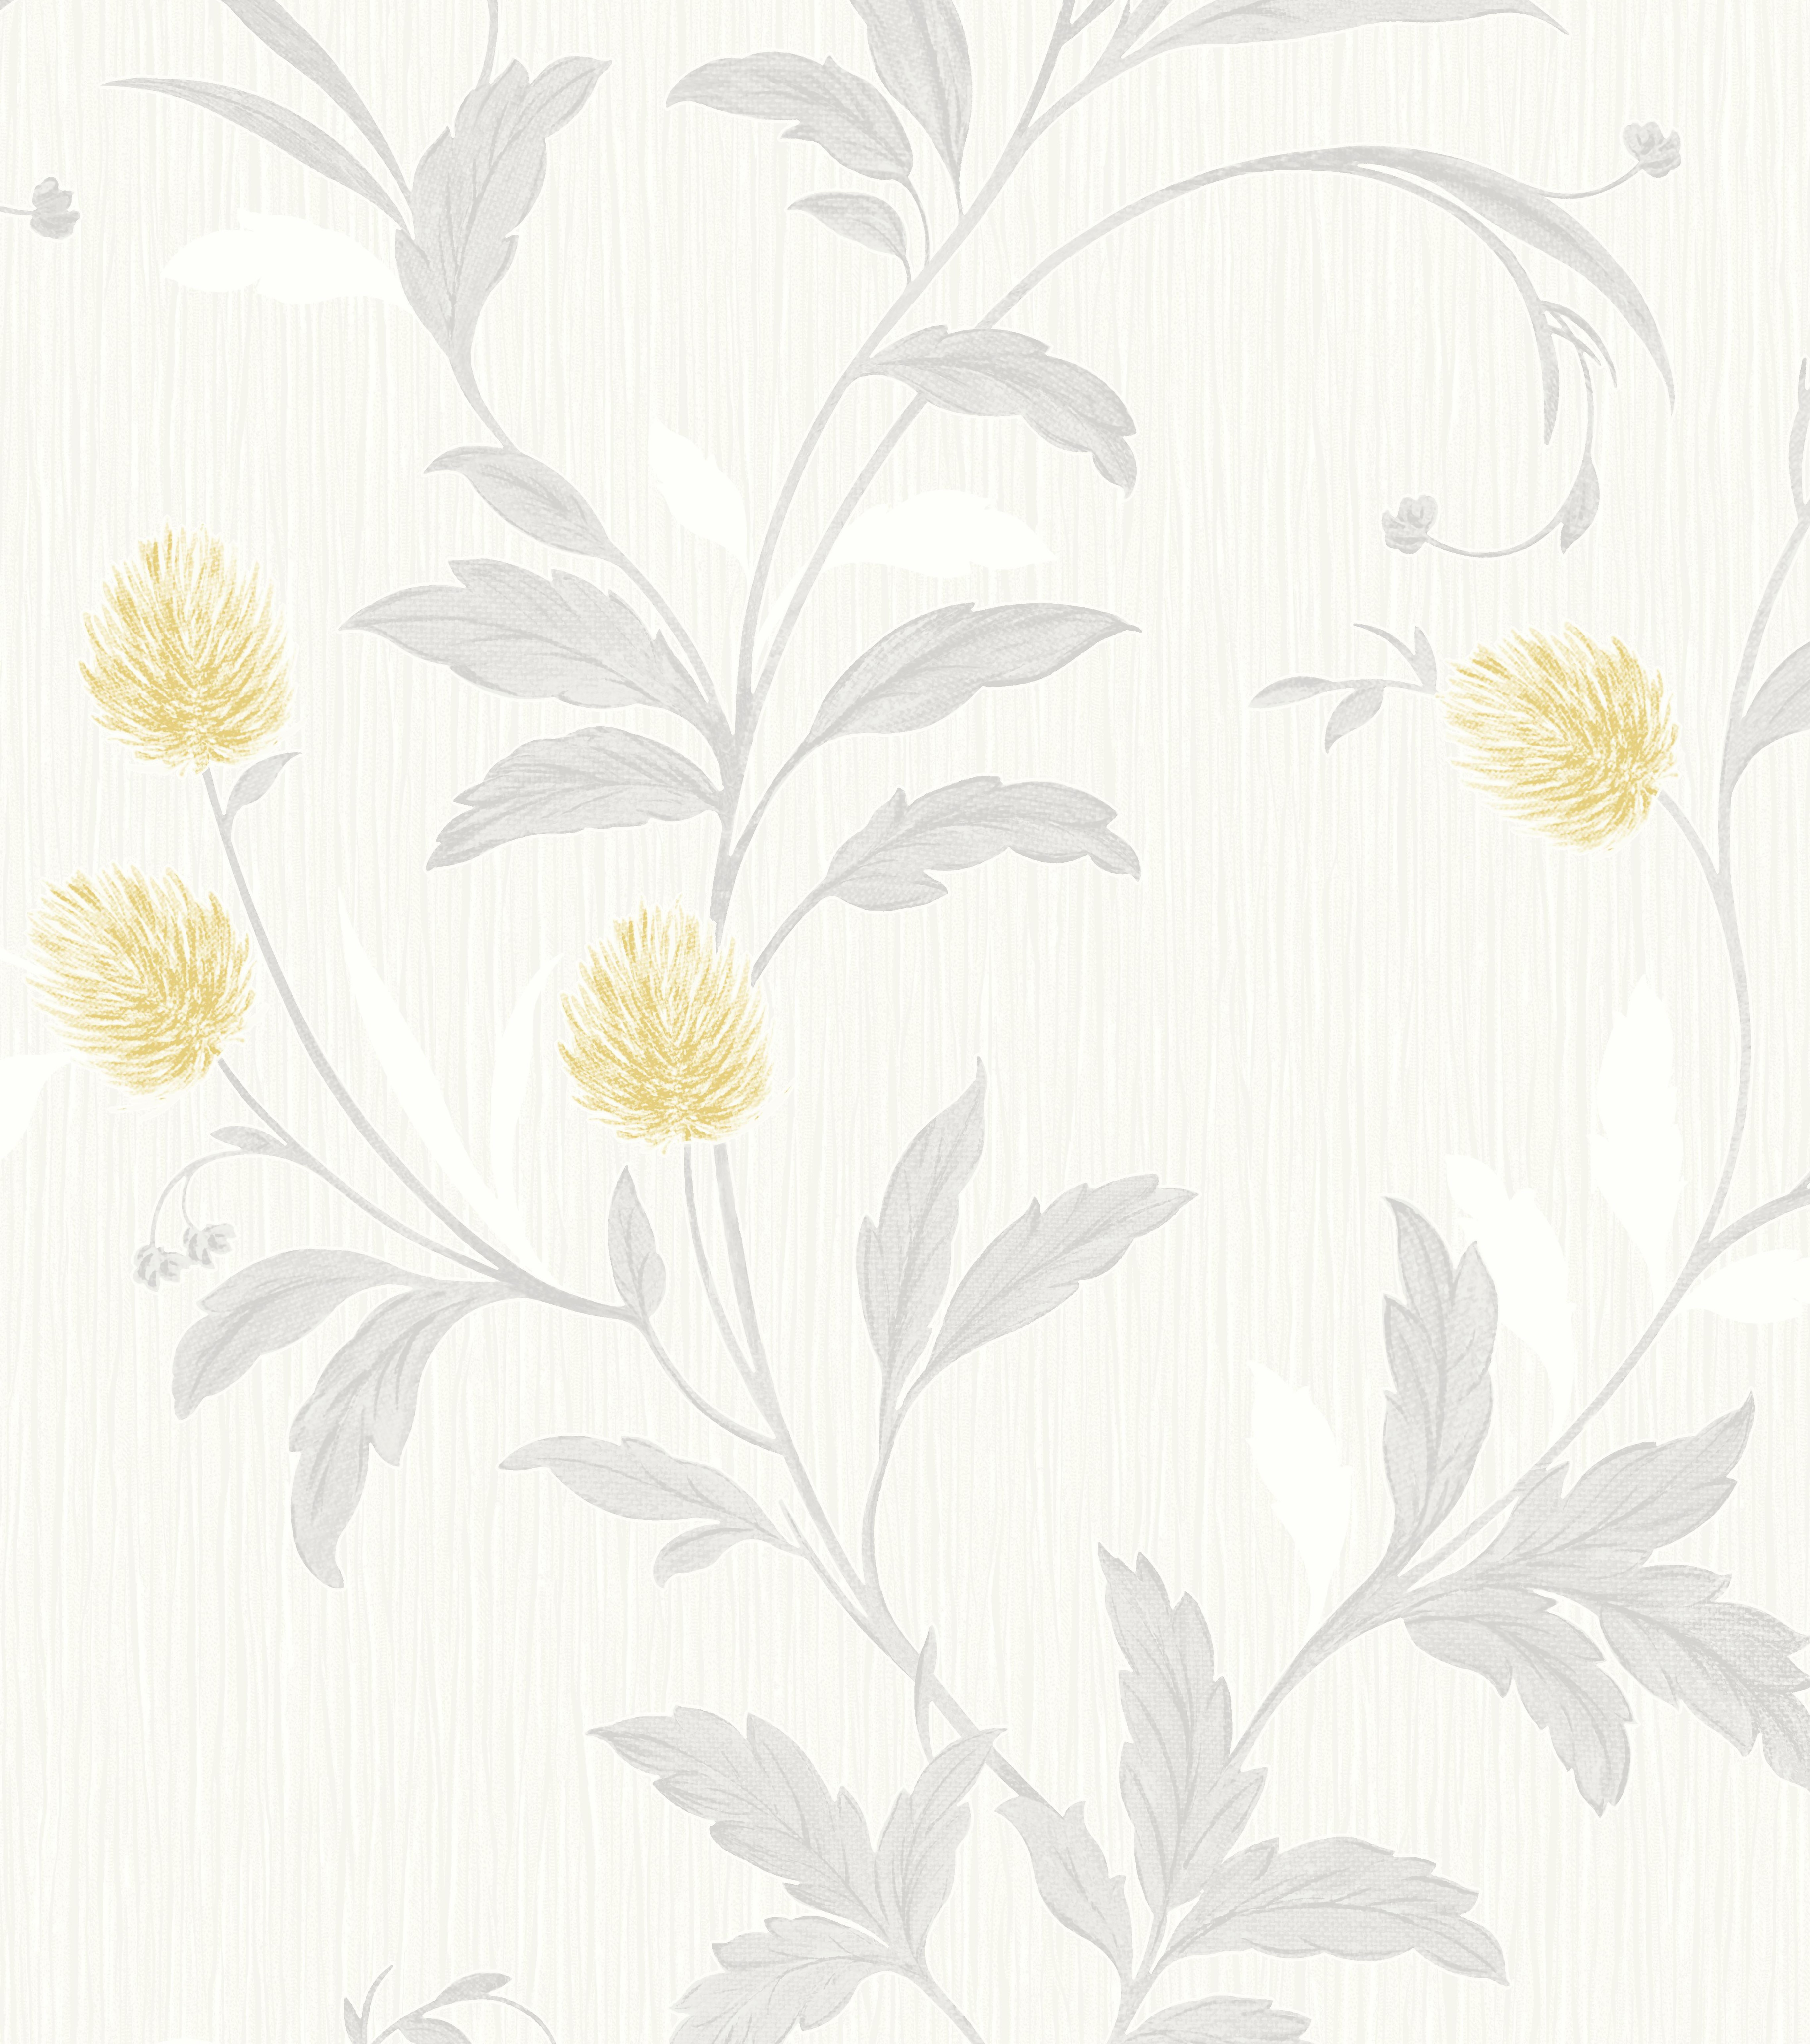 Grandeco Ideco Home Clover Textured Wallpaper -A33801